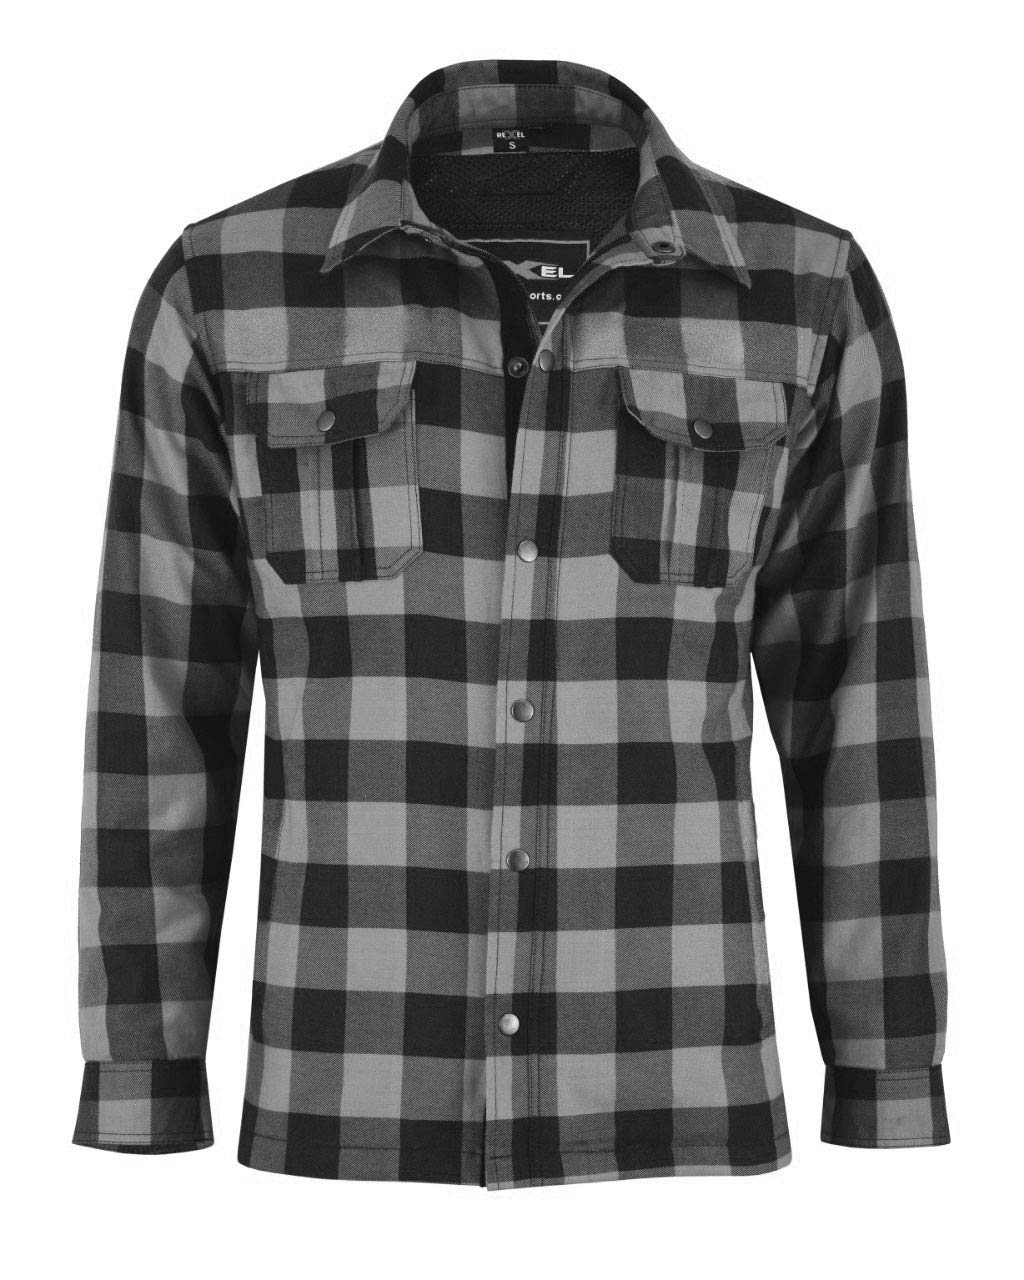 Red /& Black, L Vaster CE Armoured Motorbike Motorcycle Shirt Check Lumberjack Reinforced All Sizes